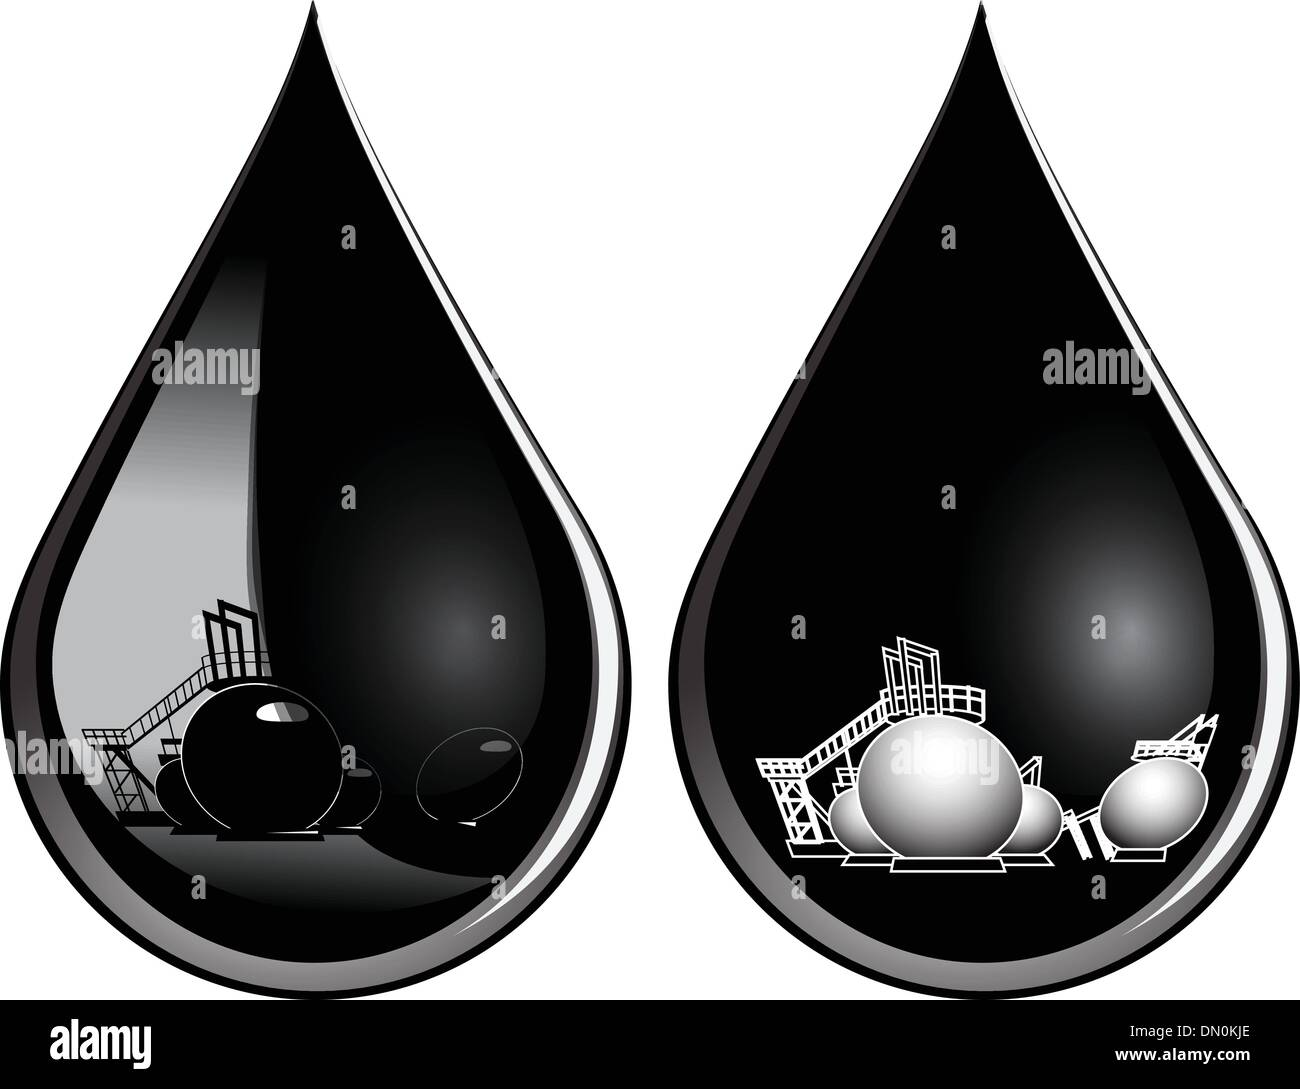 Drop of oil - Stock Image